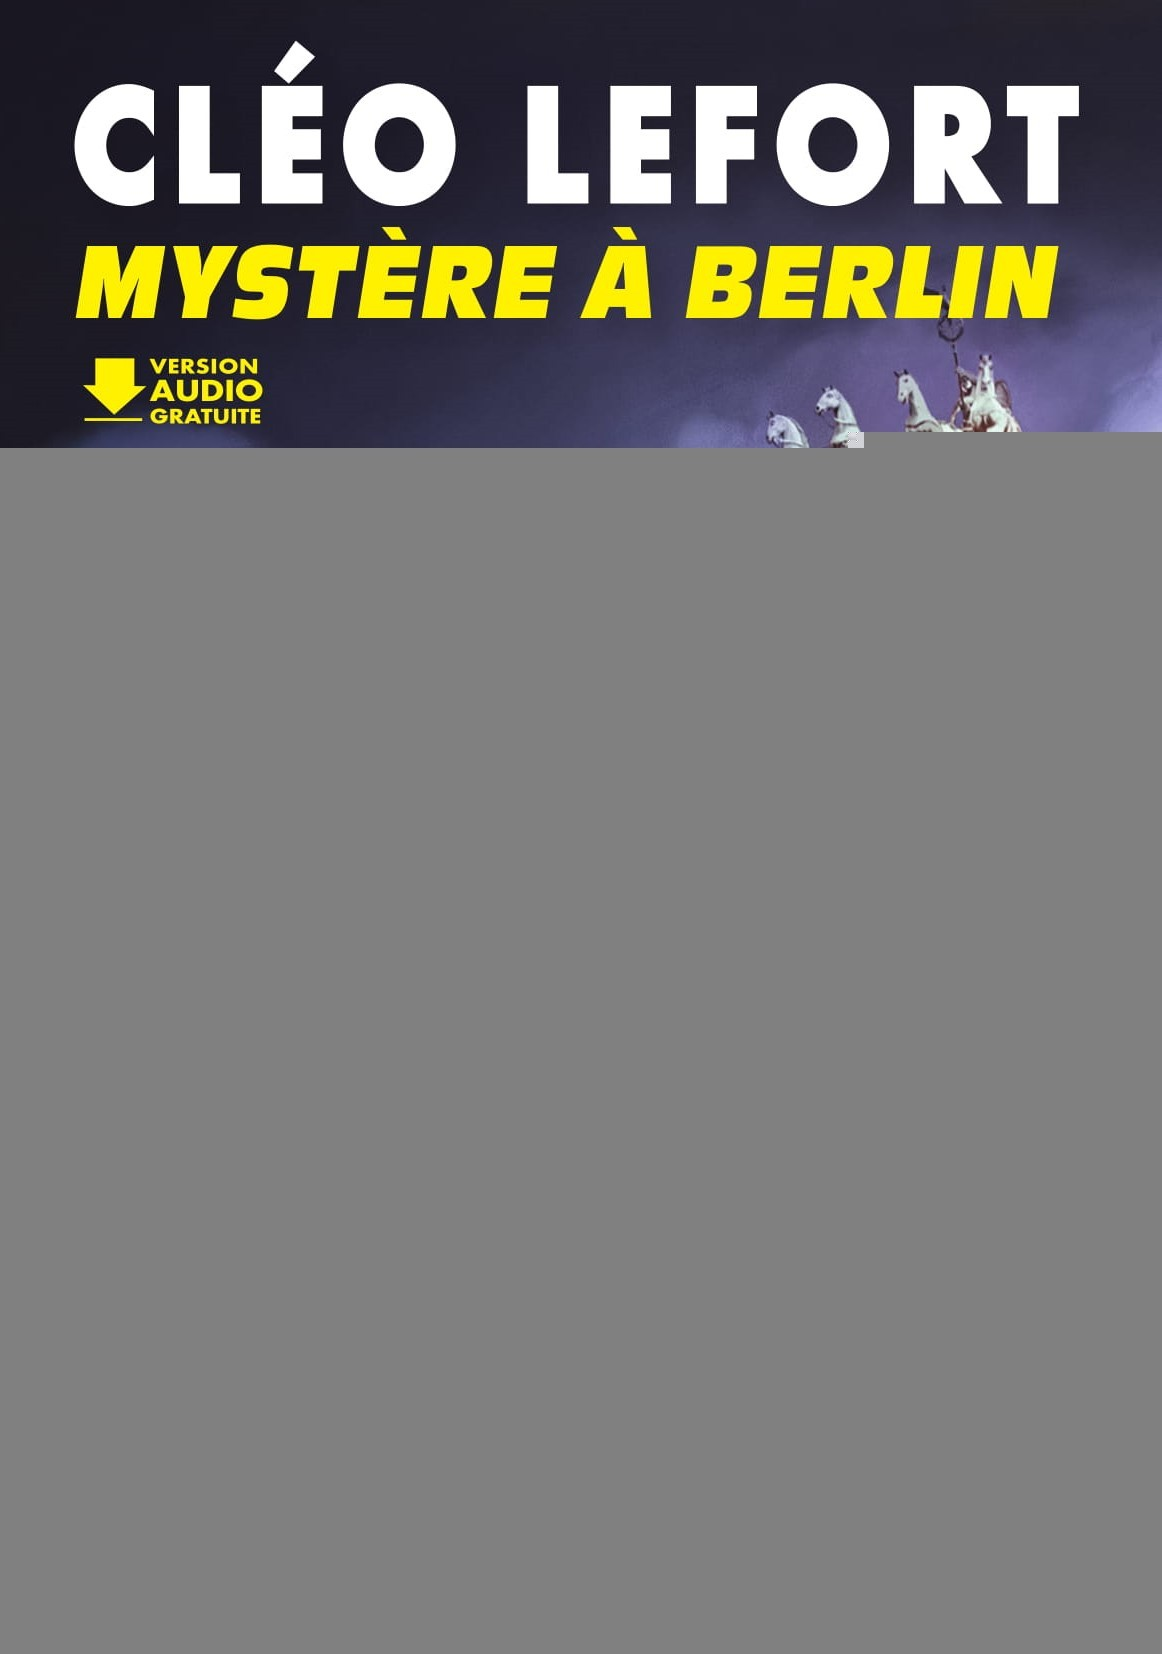 CLEO LEFORT : MYSTERE A BERLIN